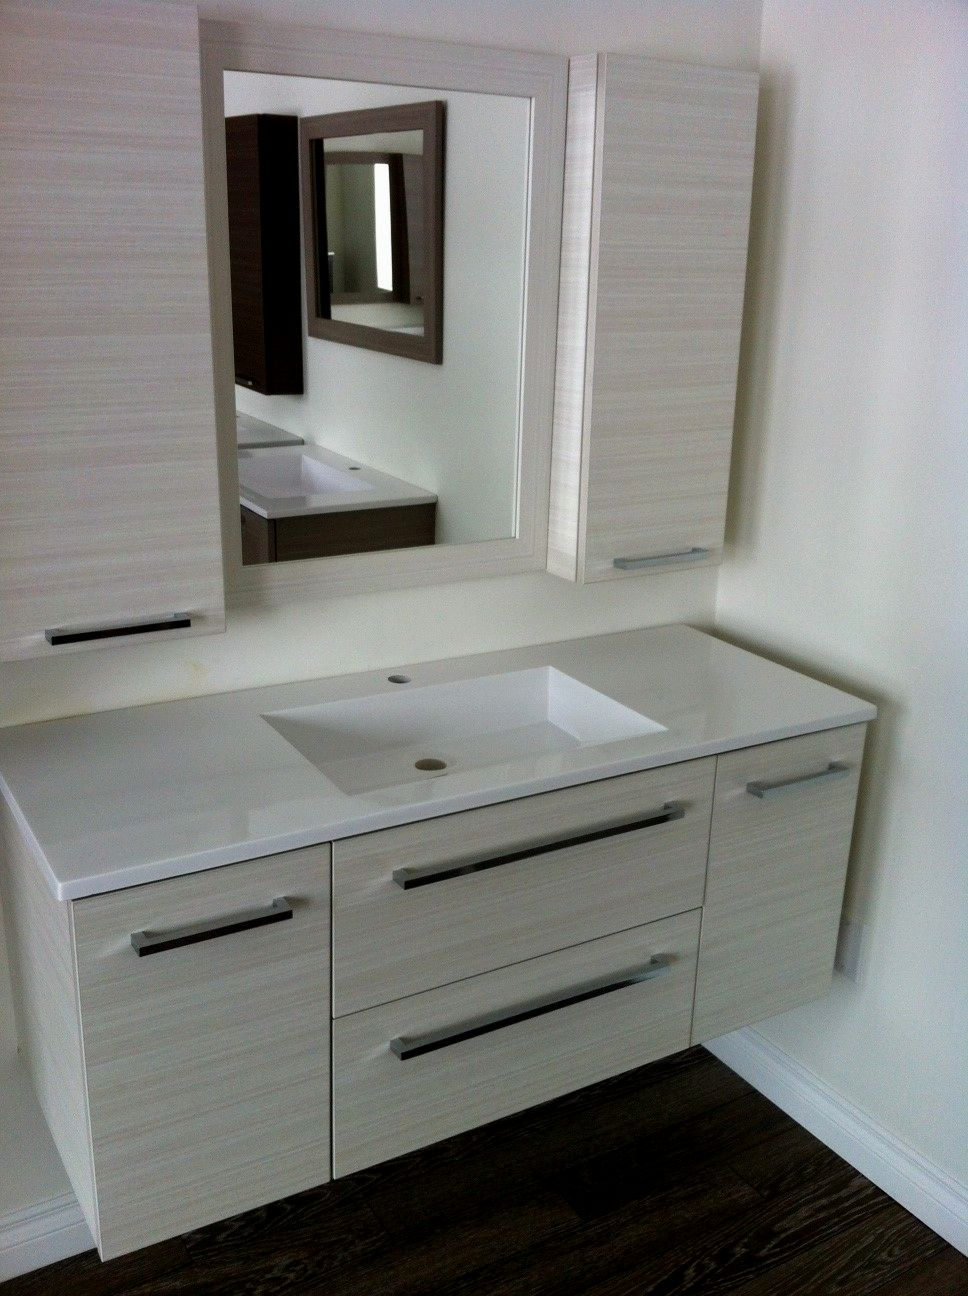 superb floating bathroom vanity picture-Amazing Floating Bathroom Vanity Construction